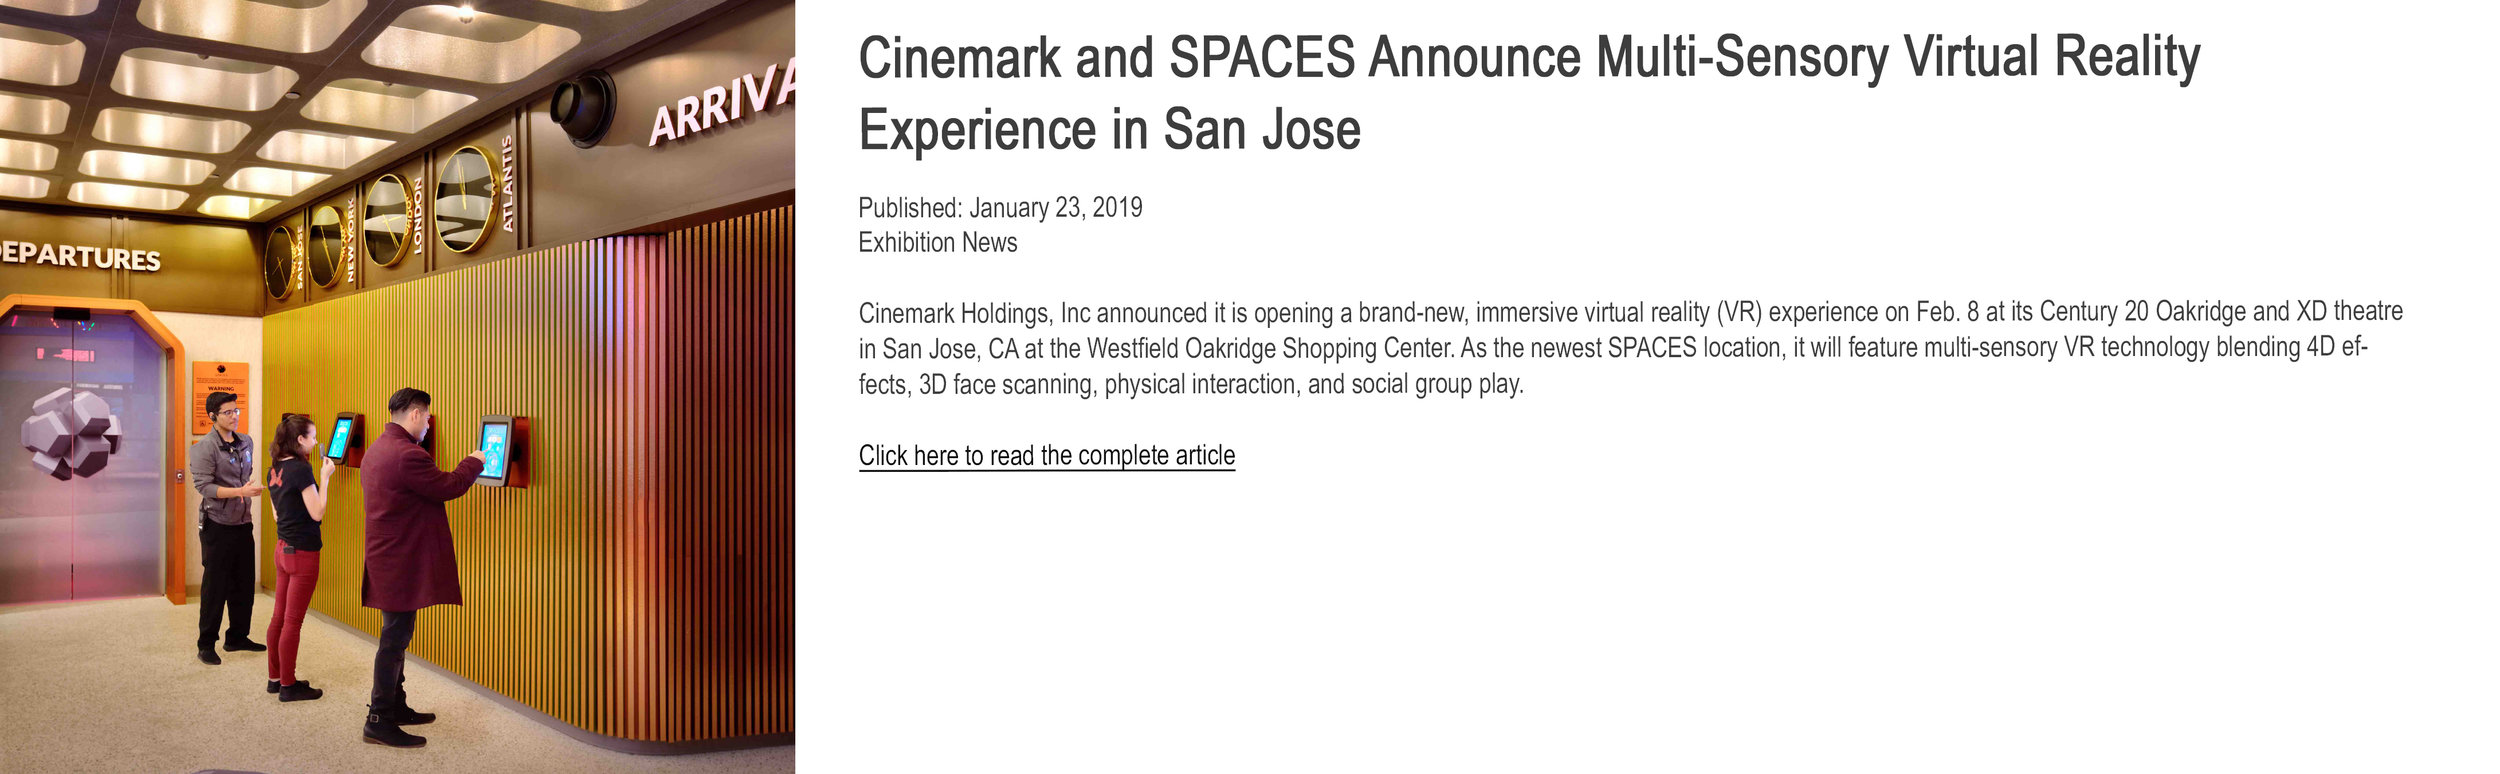 Spaces - Exhibition News.jpg